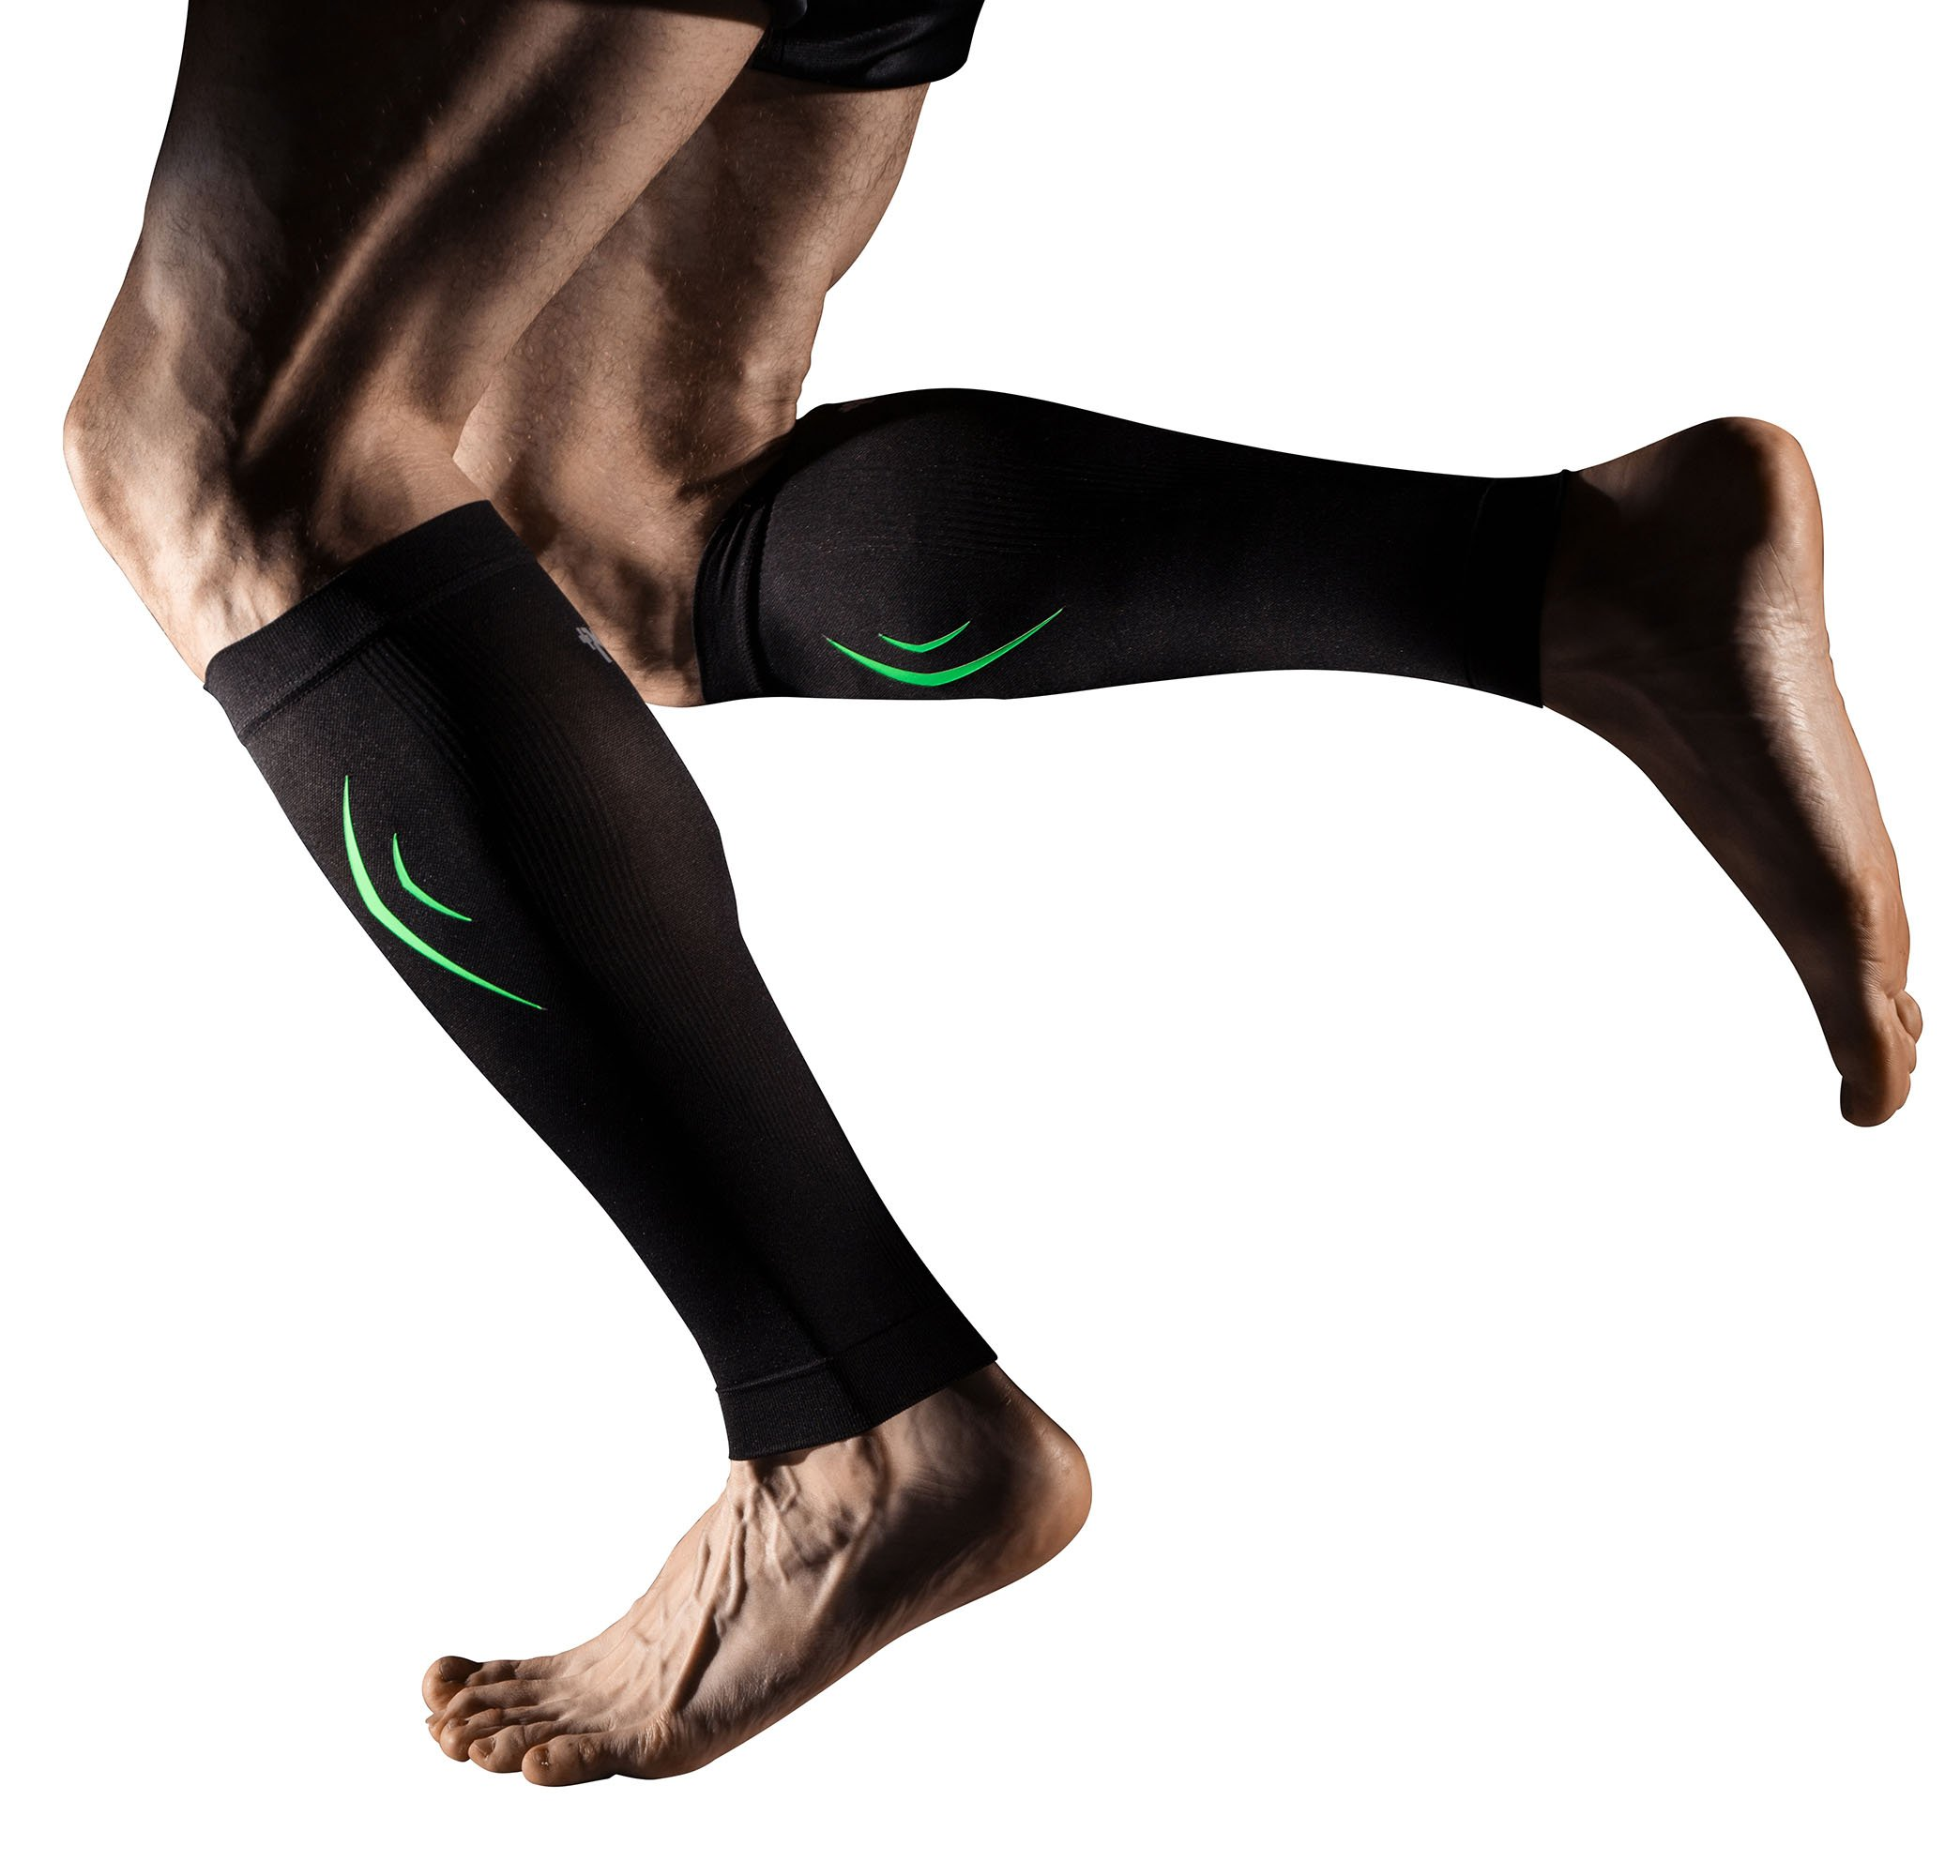 MD Compression Calf Sleeve Leg Compression Socks for Shin Splint, & Calf Pain Relief - Men, Women, and Runners - Calf Guard for Running, Cycling, Maternity, Travel, Nurses